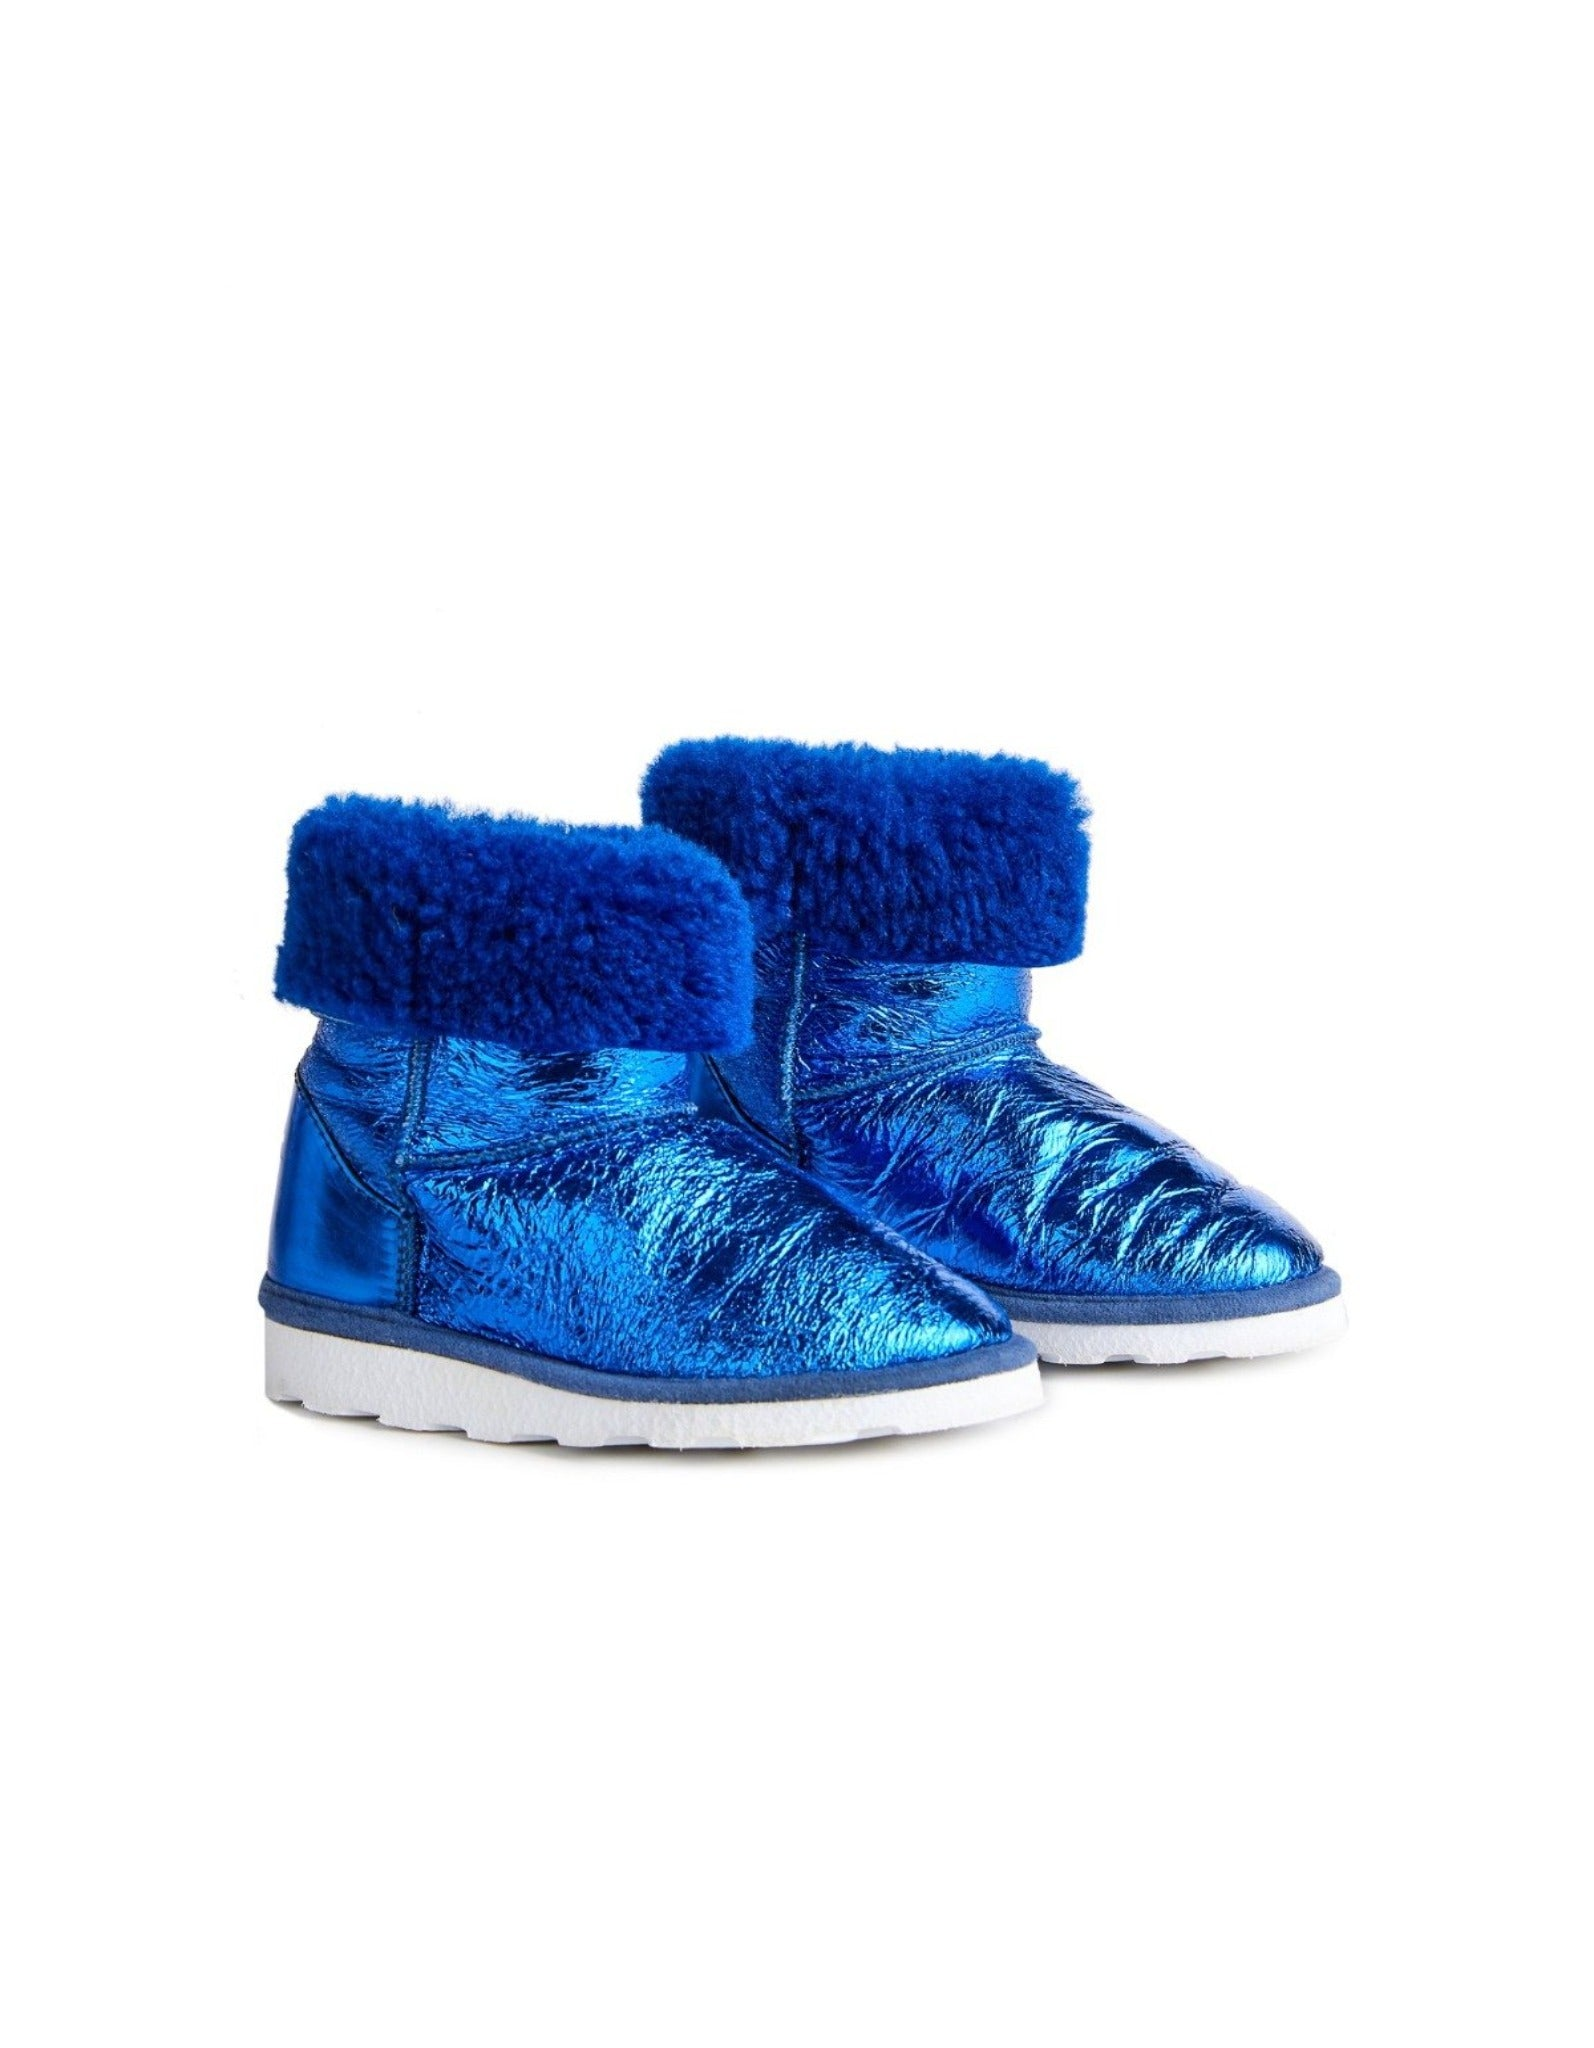 M'A KIDS LEATHER BOOTS IN BLUE